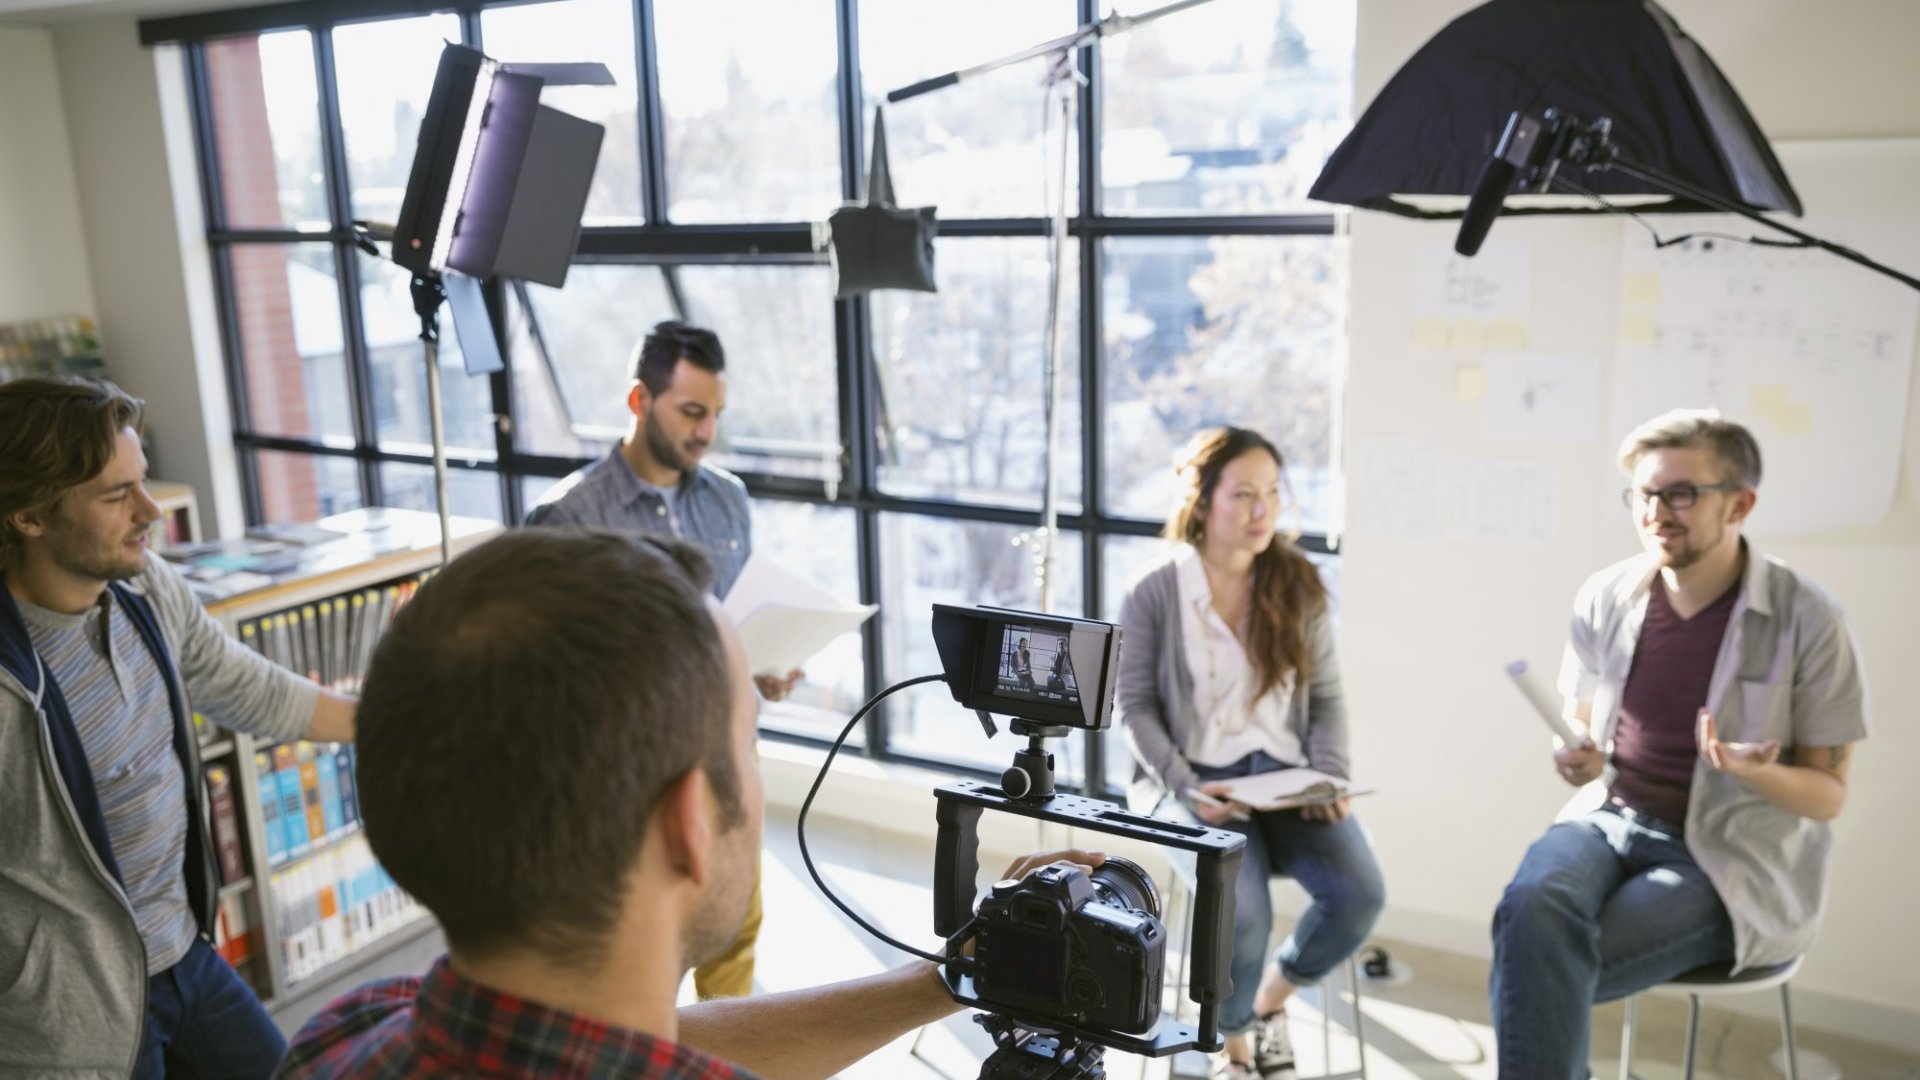 Why You Should (or Shouldn't) Send Your Startup on a Media Tour